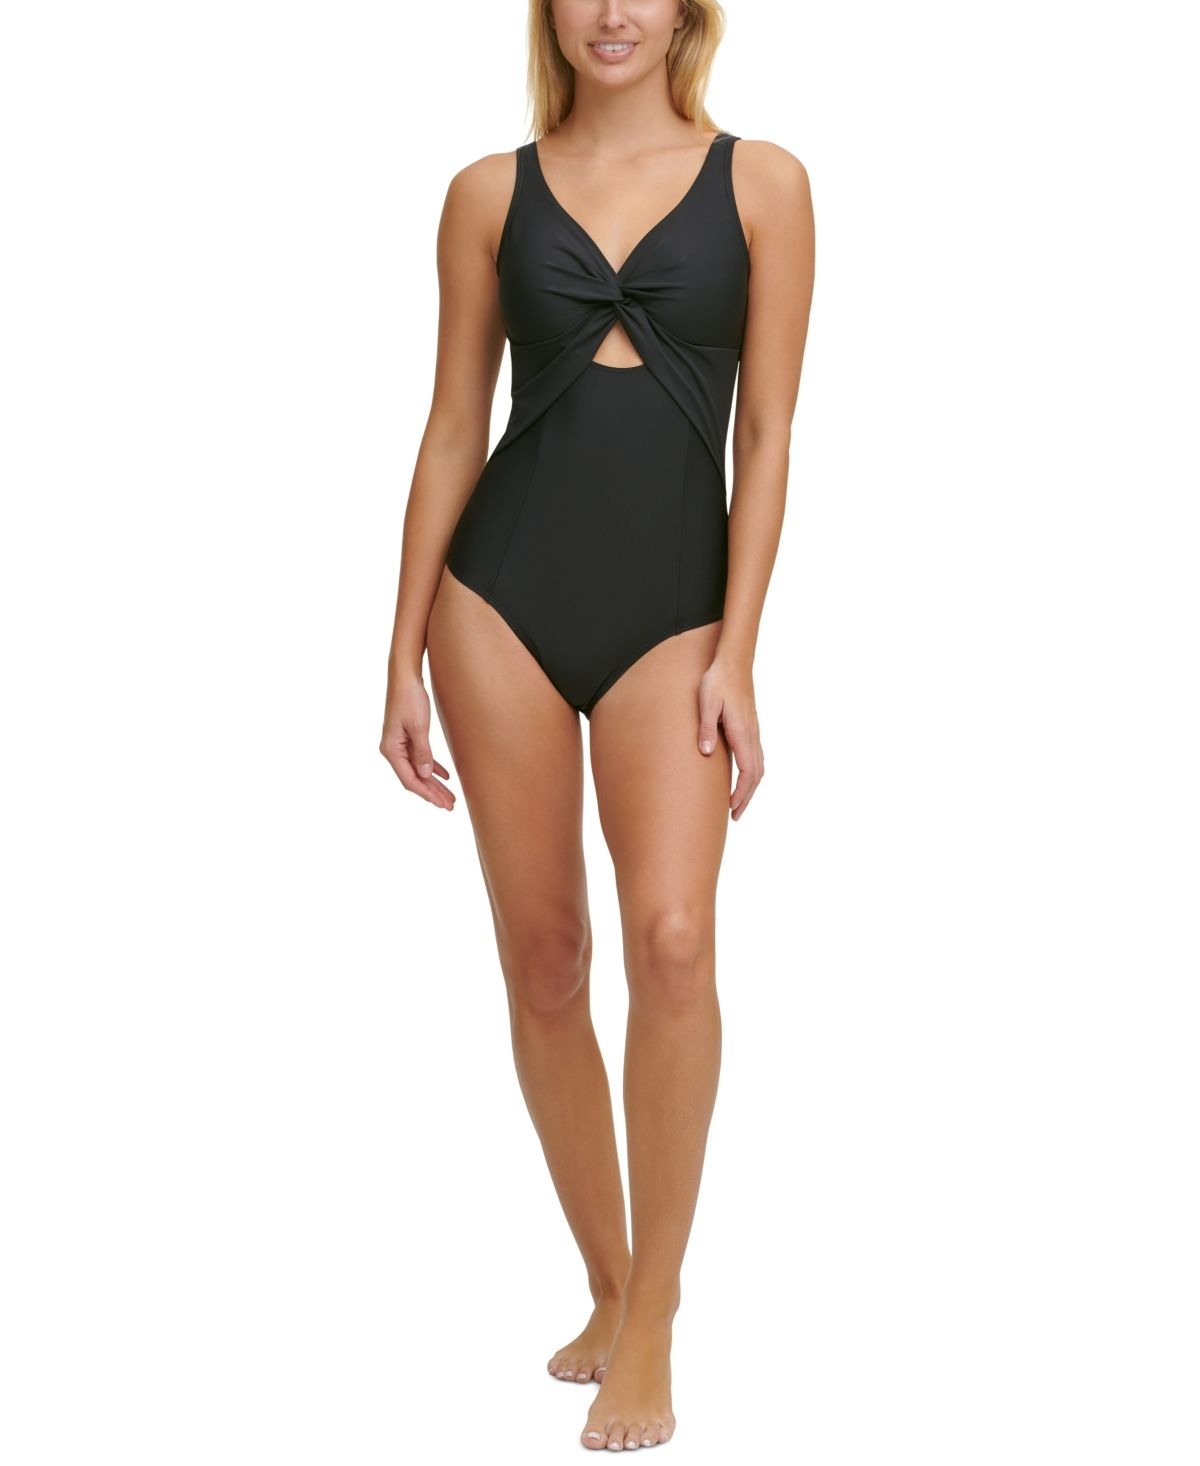 Dkny Peek A Boo Twist One Piece Swimsuit Reviews Swimsuits Cover Ups Women Macy S In 2021 One Piece One Piece Swimsuit Black One Piece Swimsuit